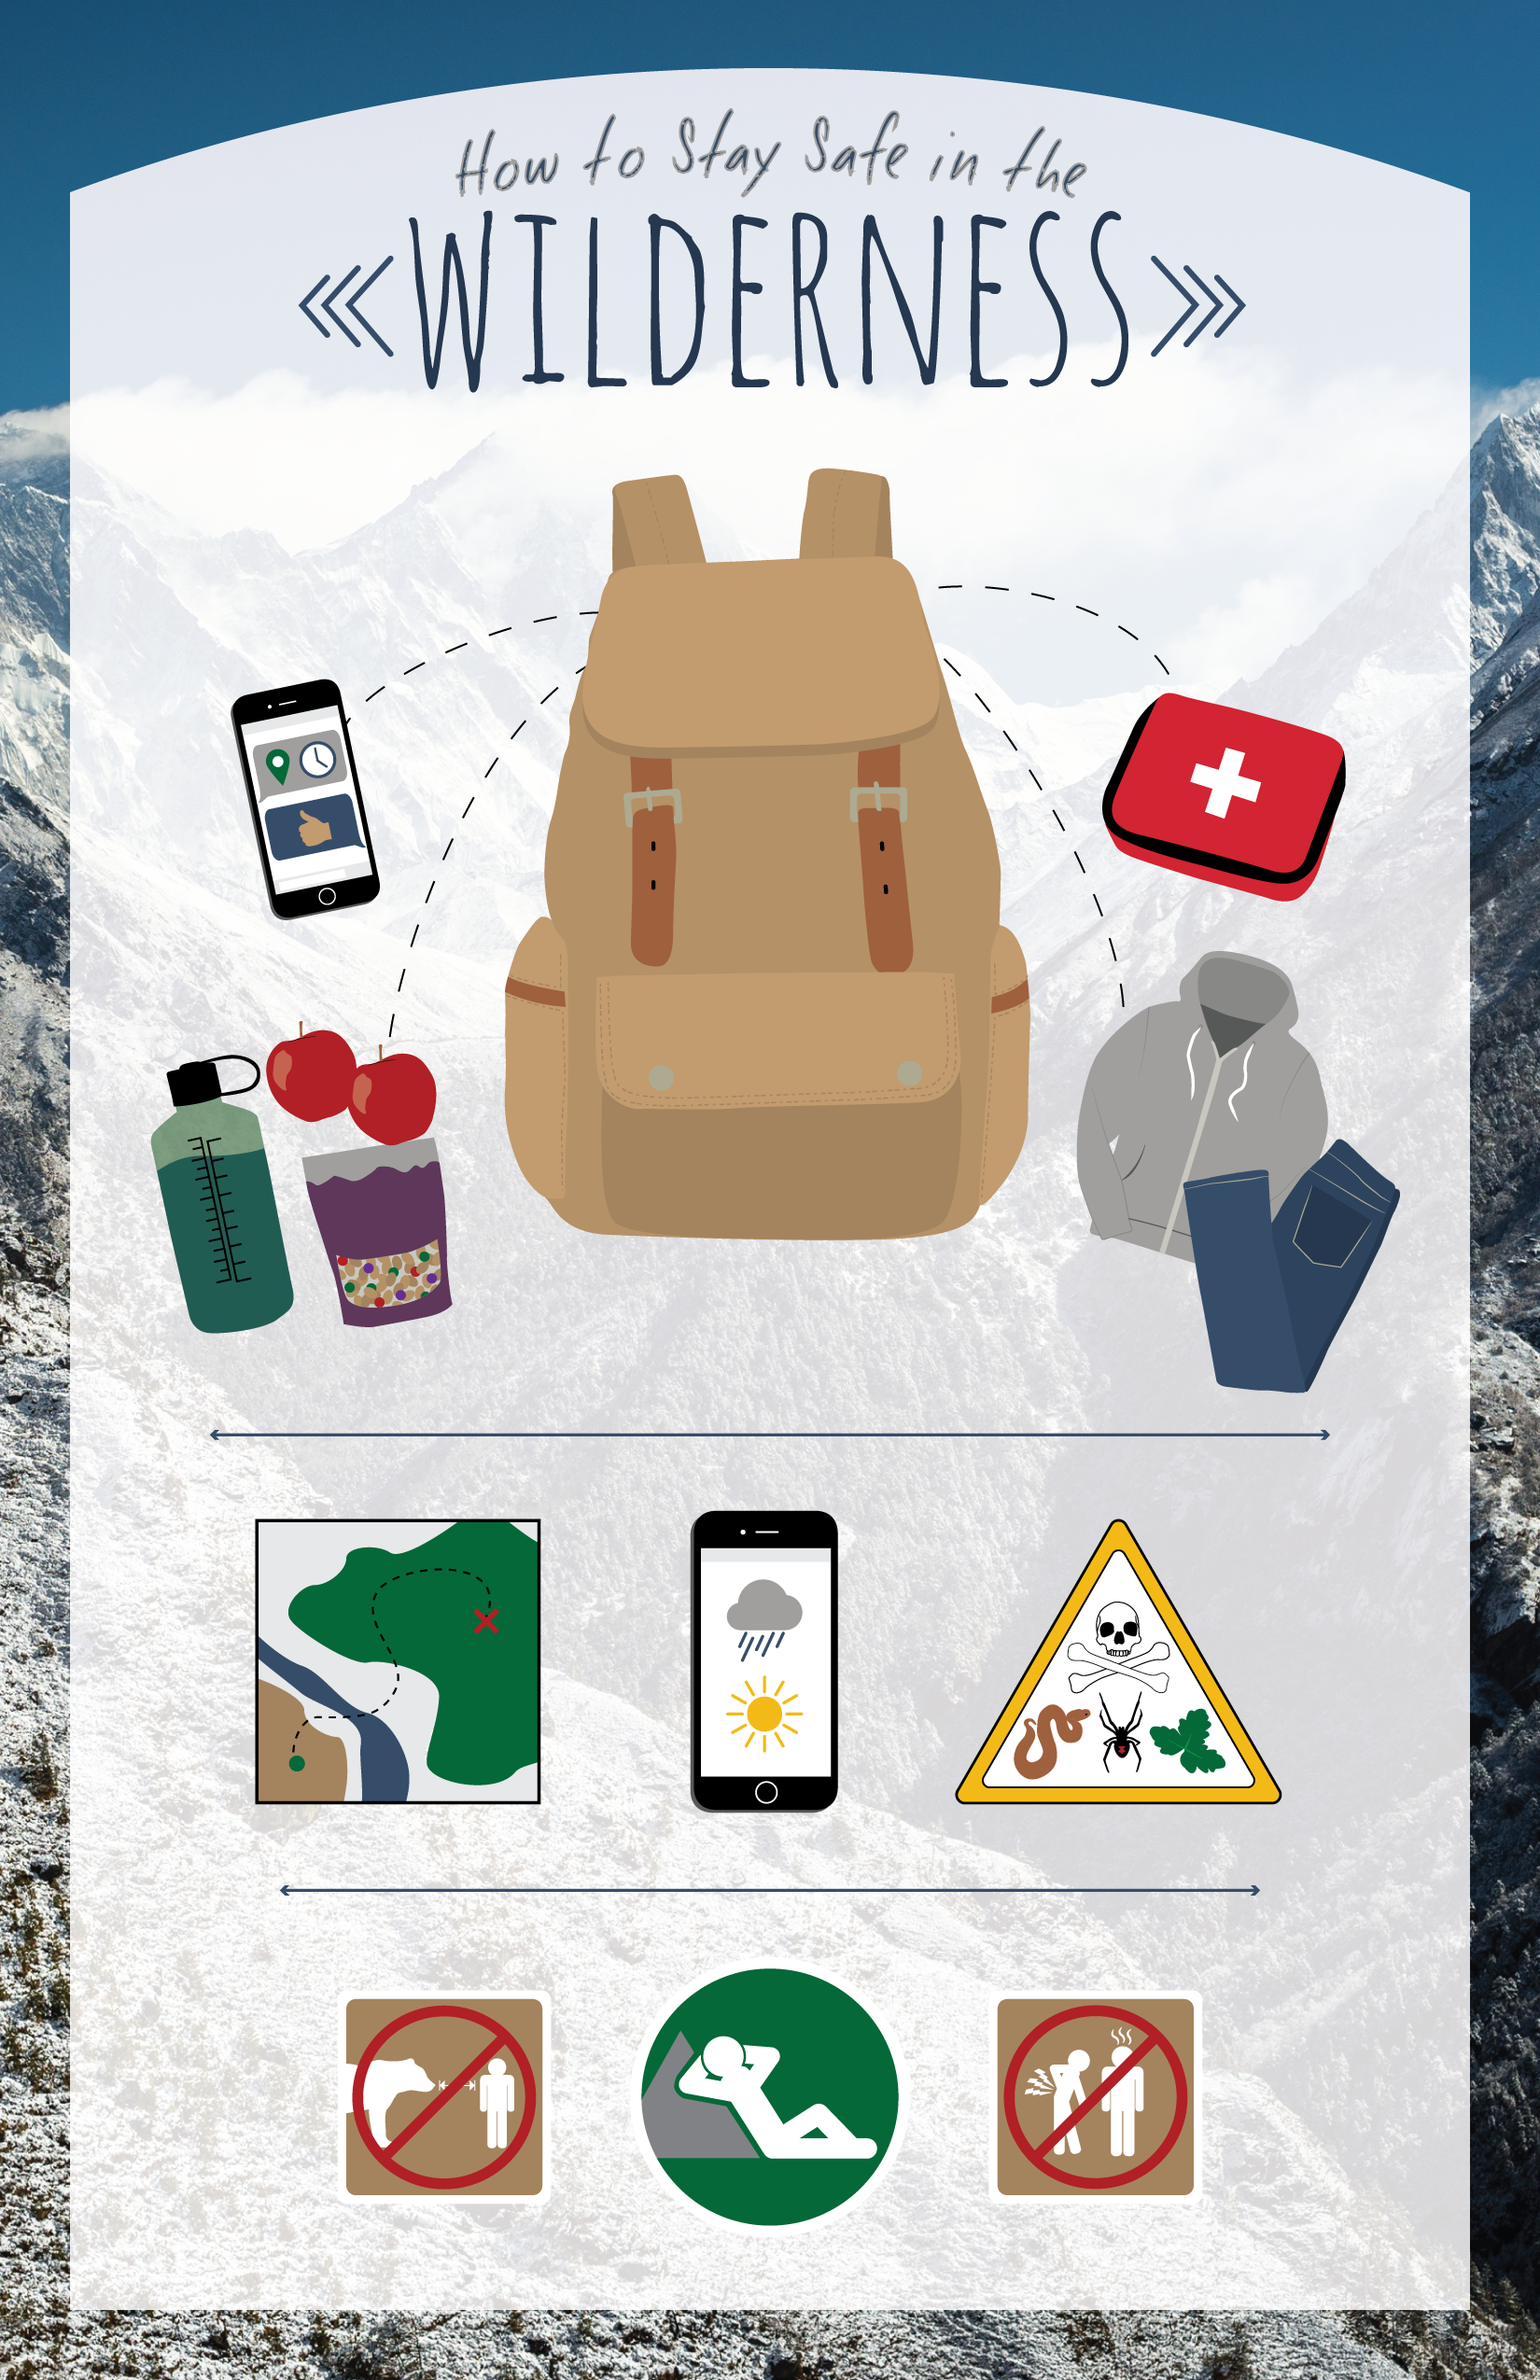 Wilderness_Infographic-01.png